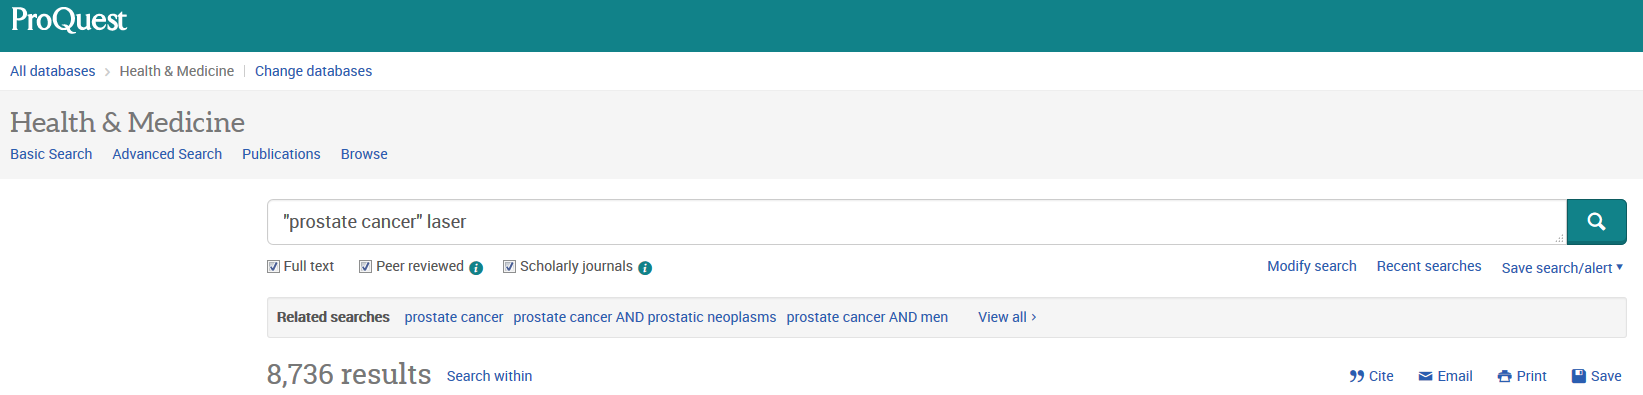 Screenshot of Proquest website showing results of search for 'prostate cancer laser'